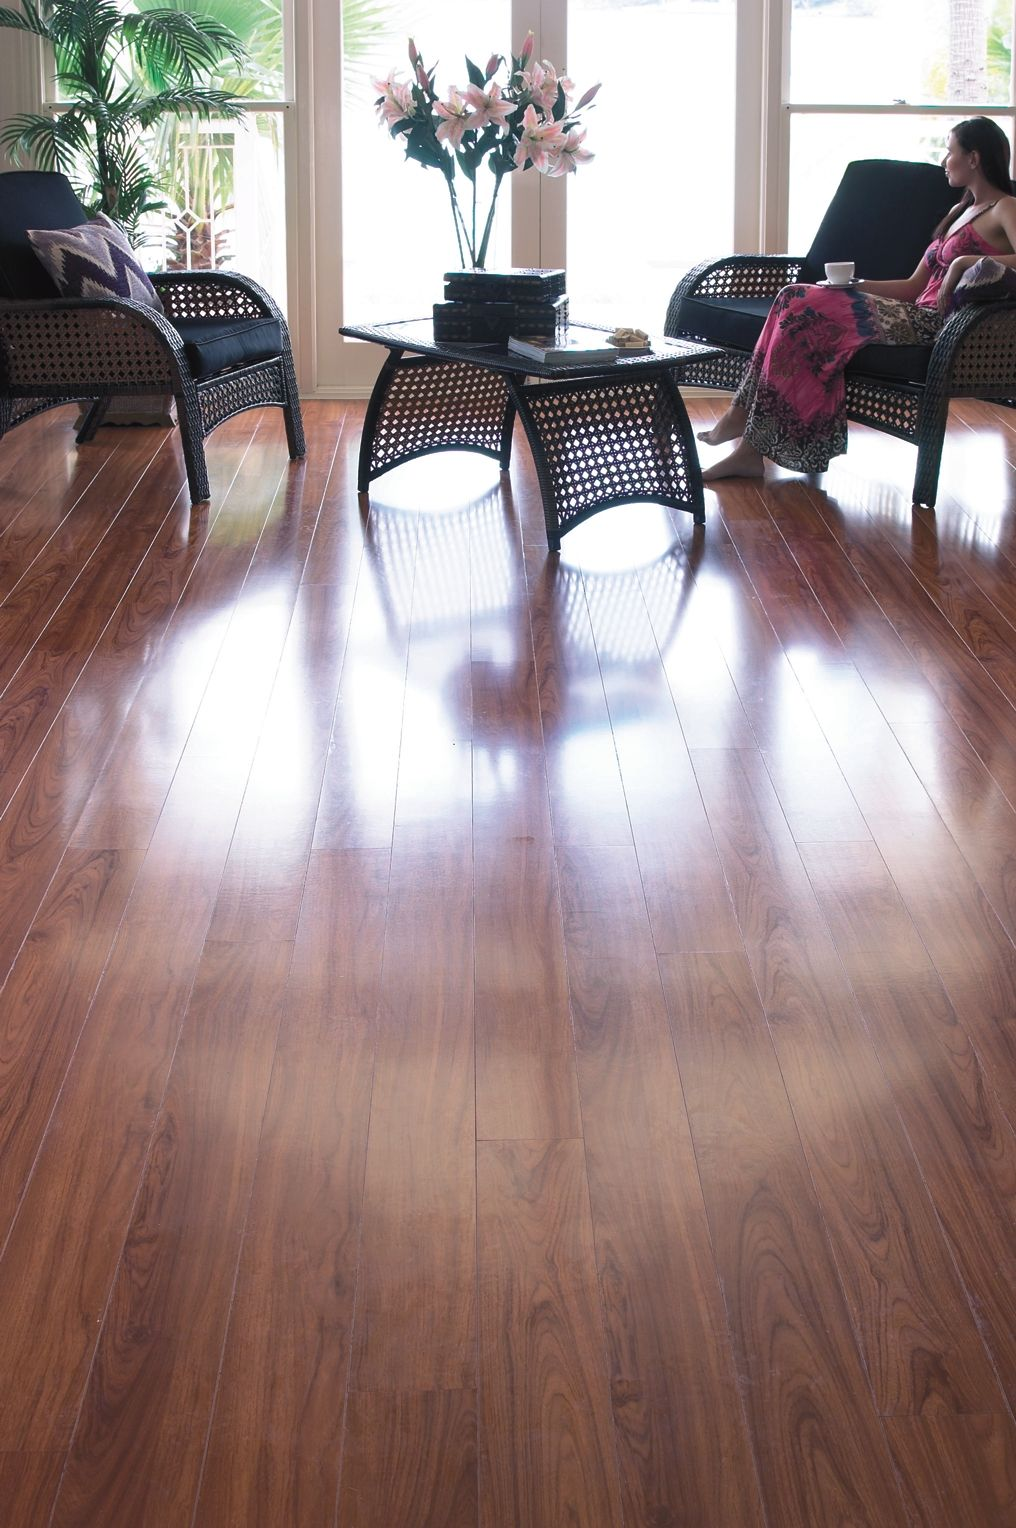 1000+ images about floors on Pinterest Laminate Flooring, Joss ... - ^